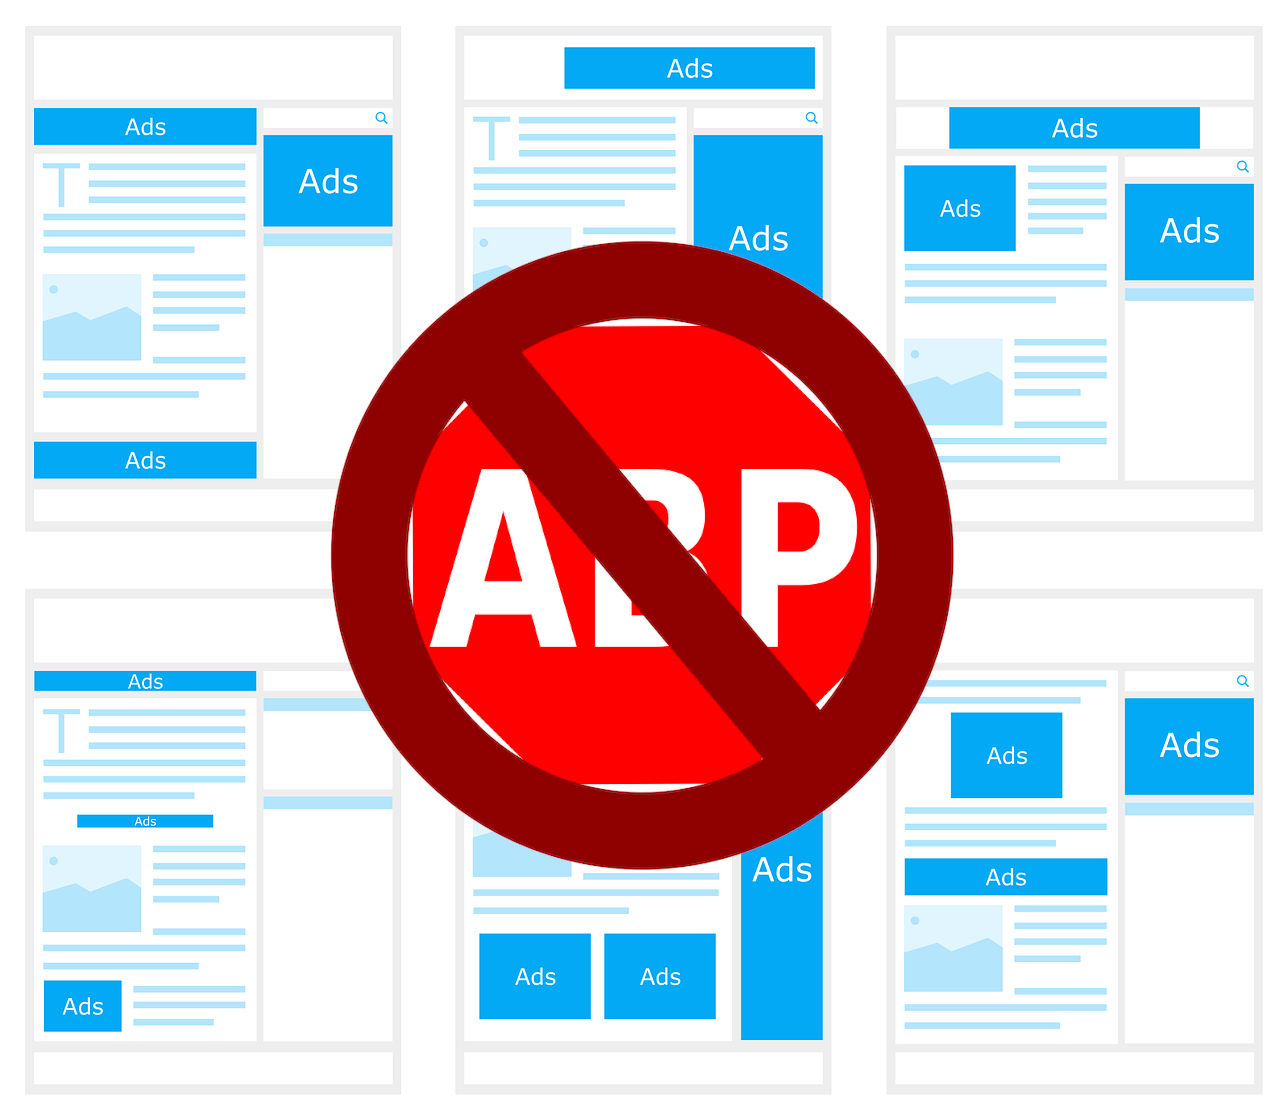 AdBlock Solutions for Publishers: How to Reclaim Your Lost Revenue?